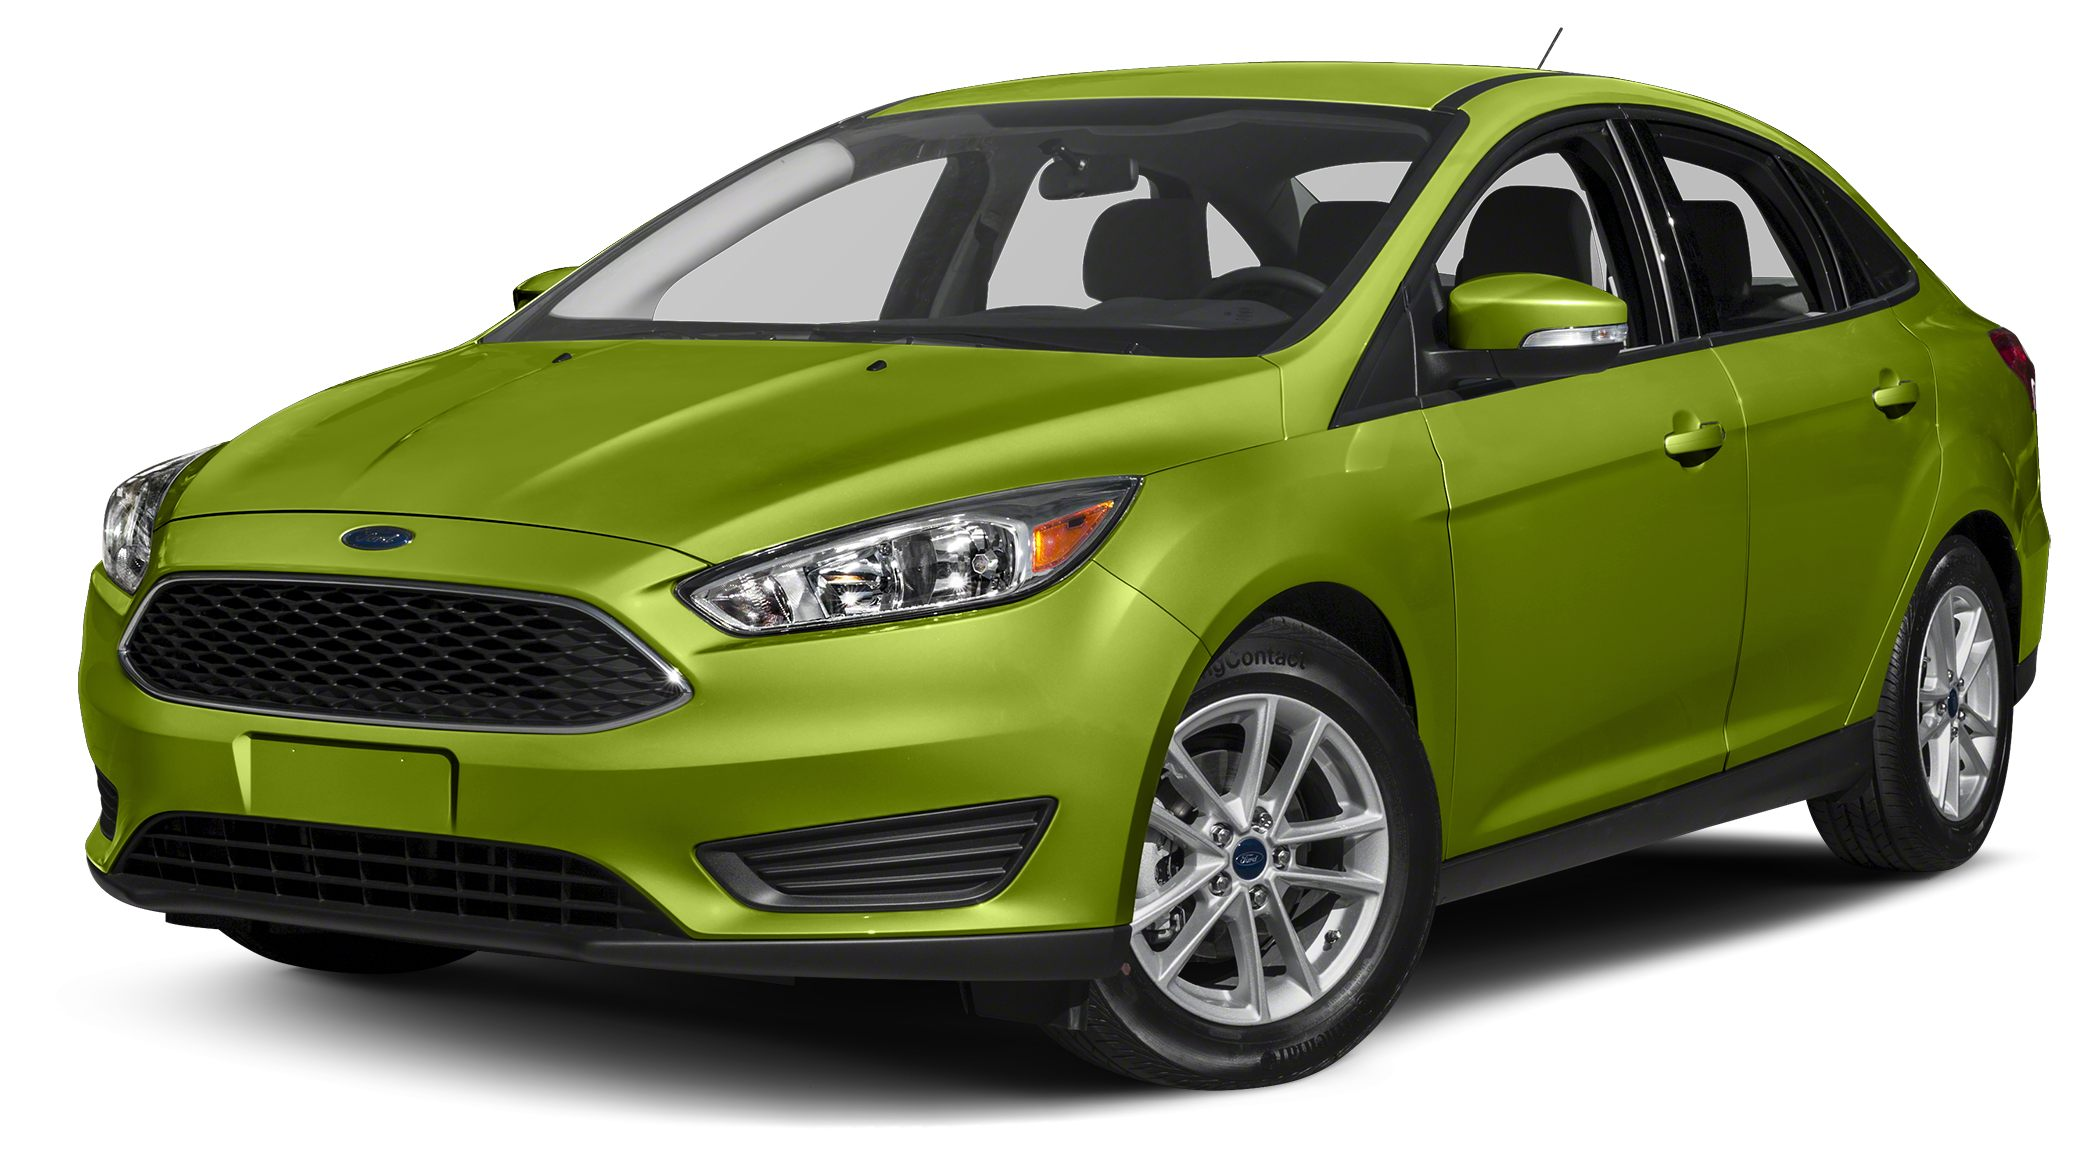 2018 Ford Focus SEL 2018 Ford Focus SEL 3424 HighwayCity MPG Price includes 4000 - Retail Cus